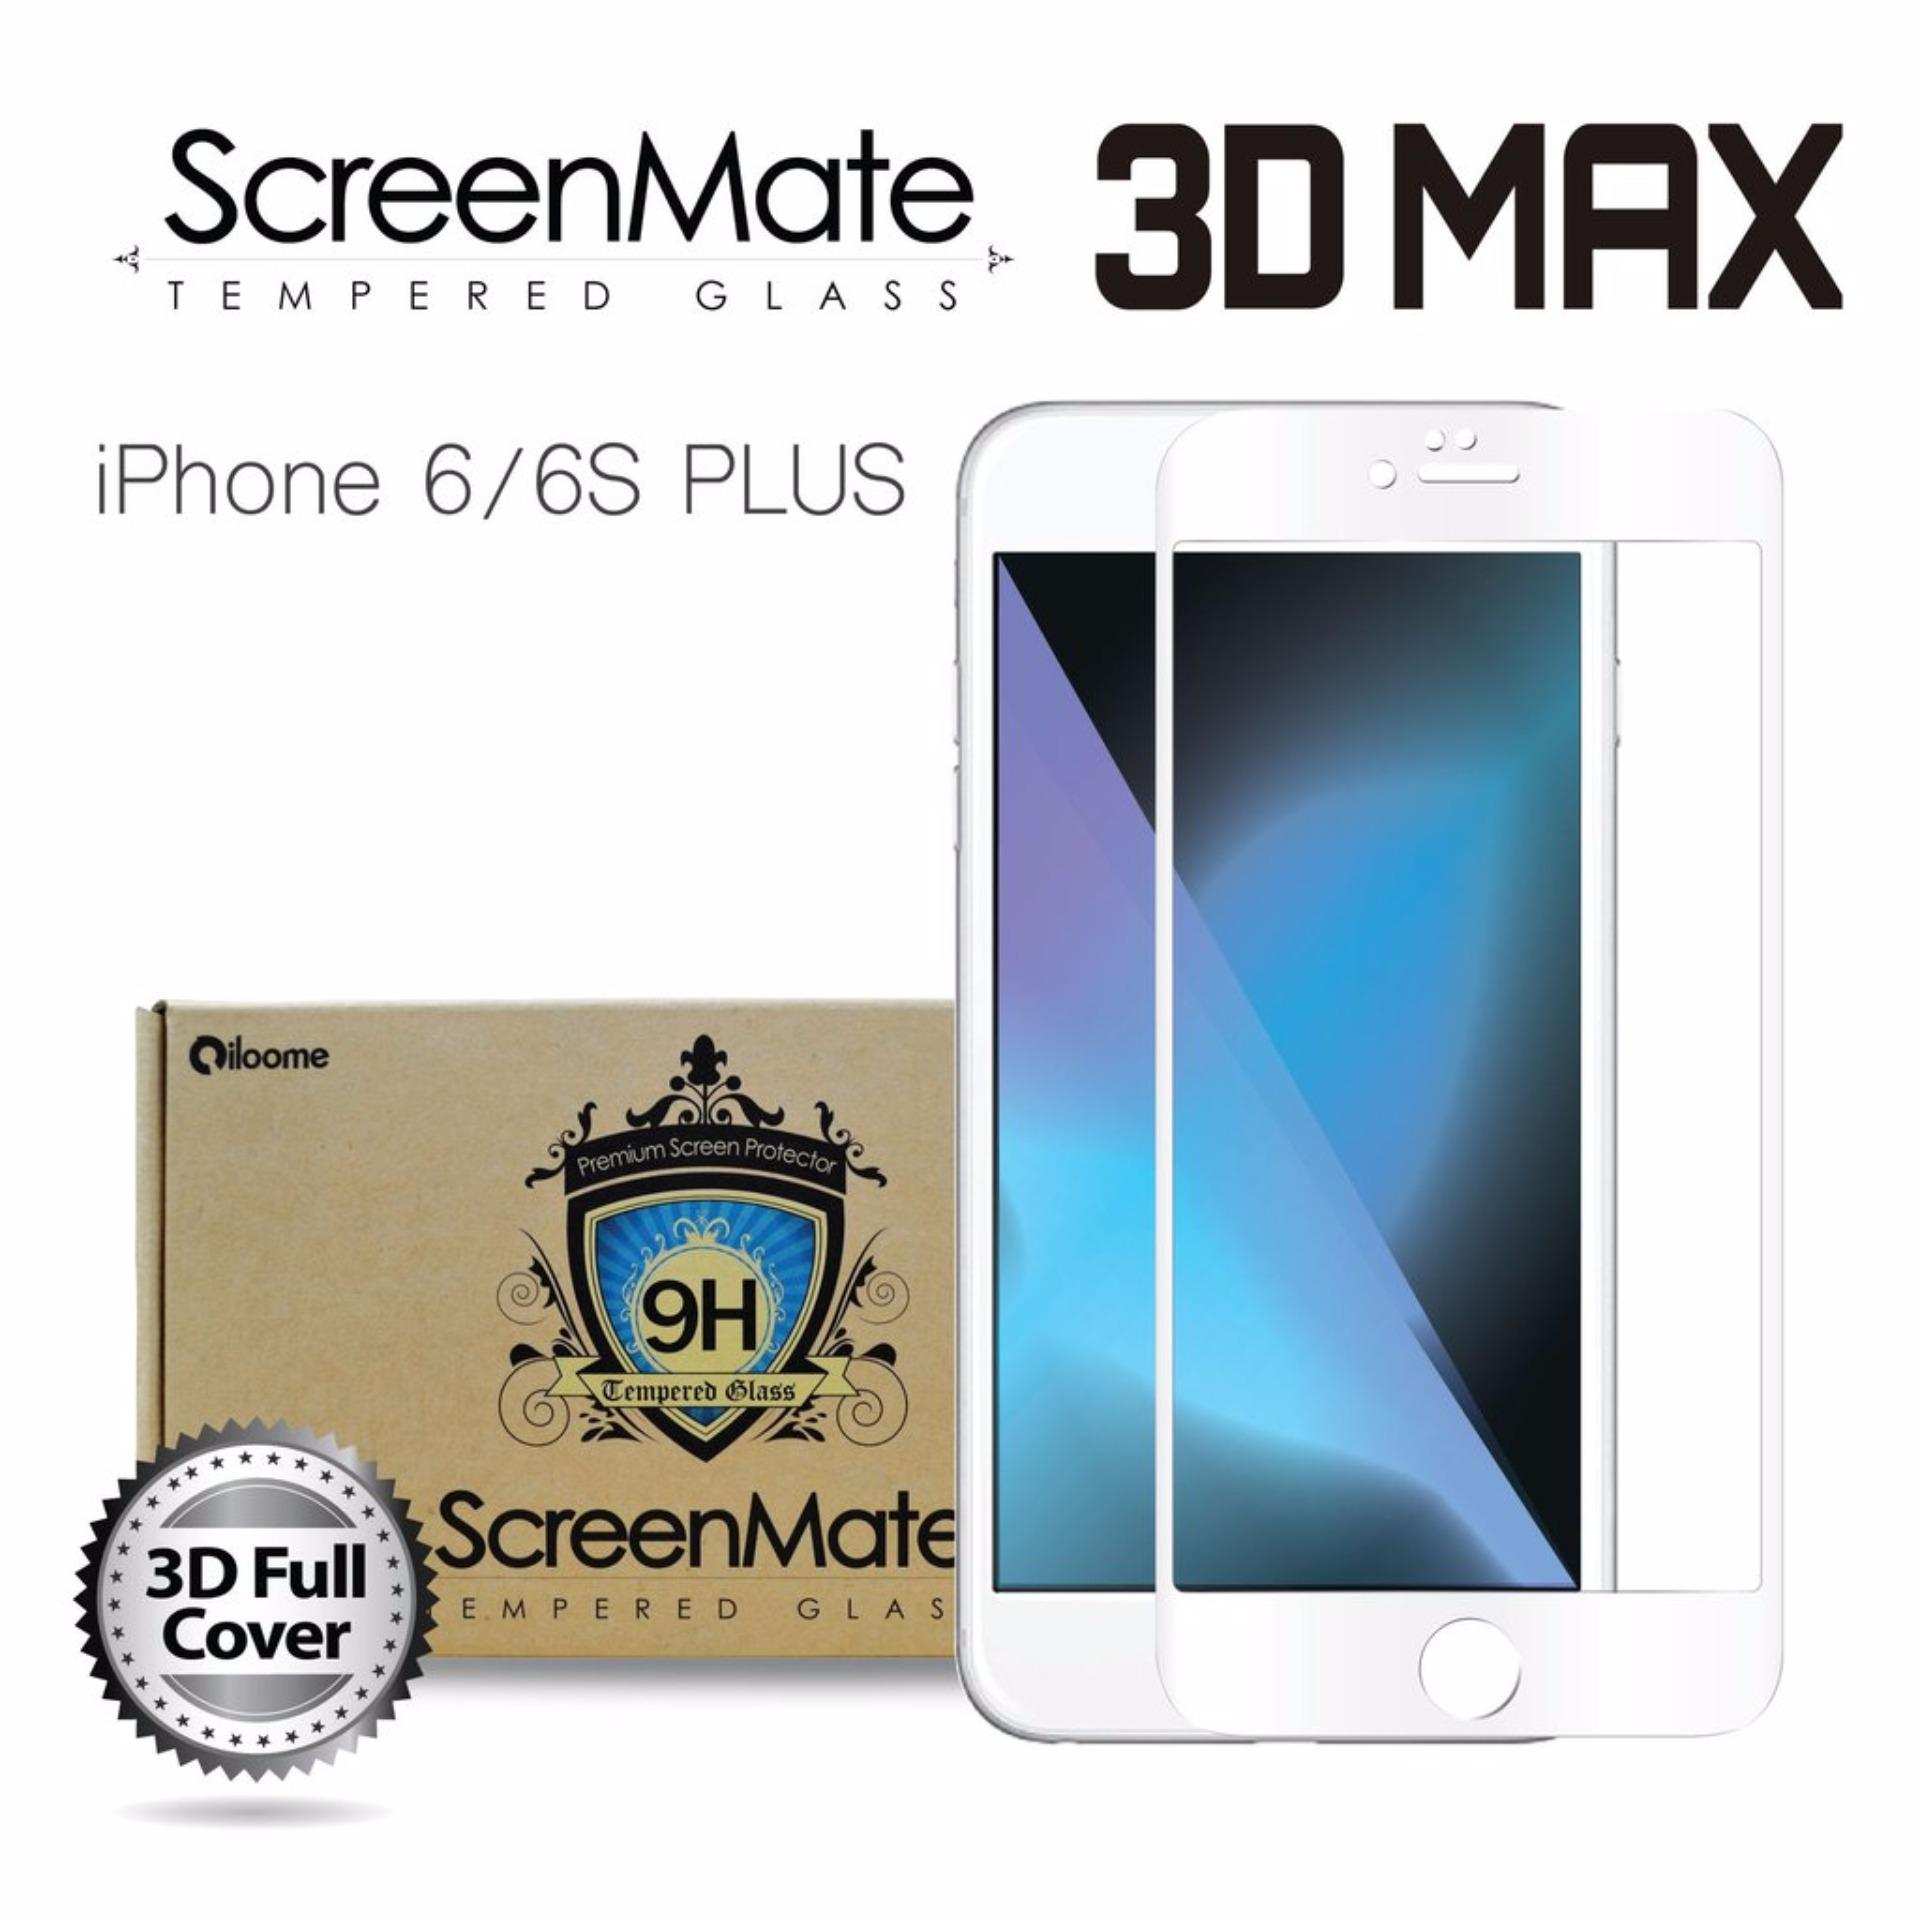 4d Full Curved Tempered Glass Warna Screen Cover Protector For Iphone 6 6s Plus 3d Clear Premium Iloome Screenmate Max Iphone6 Or